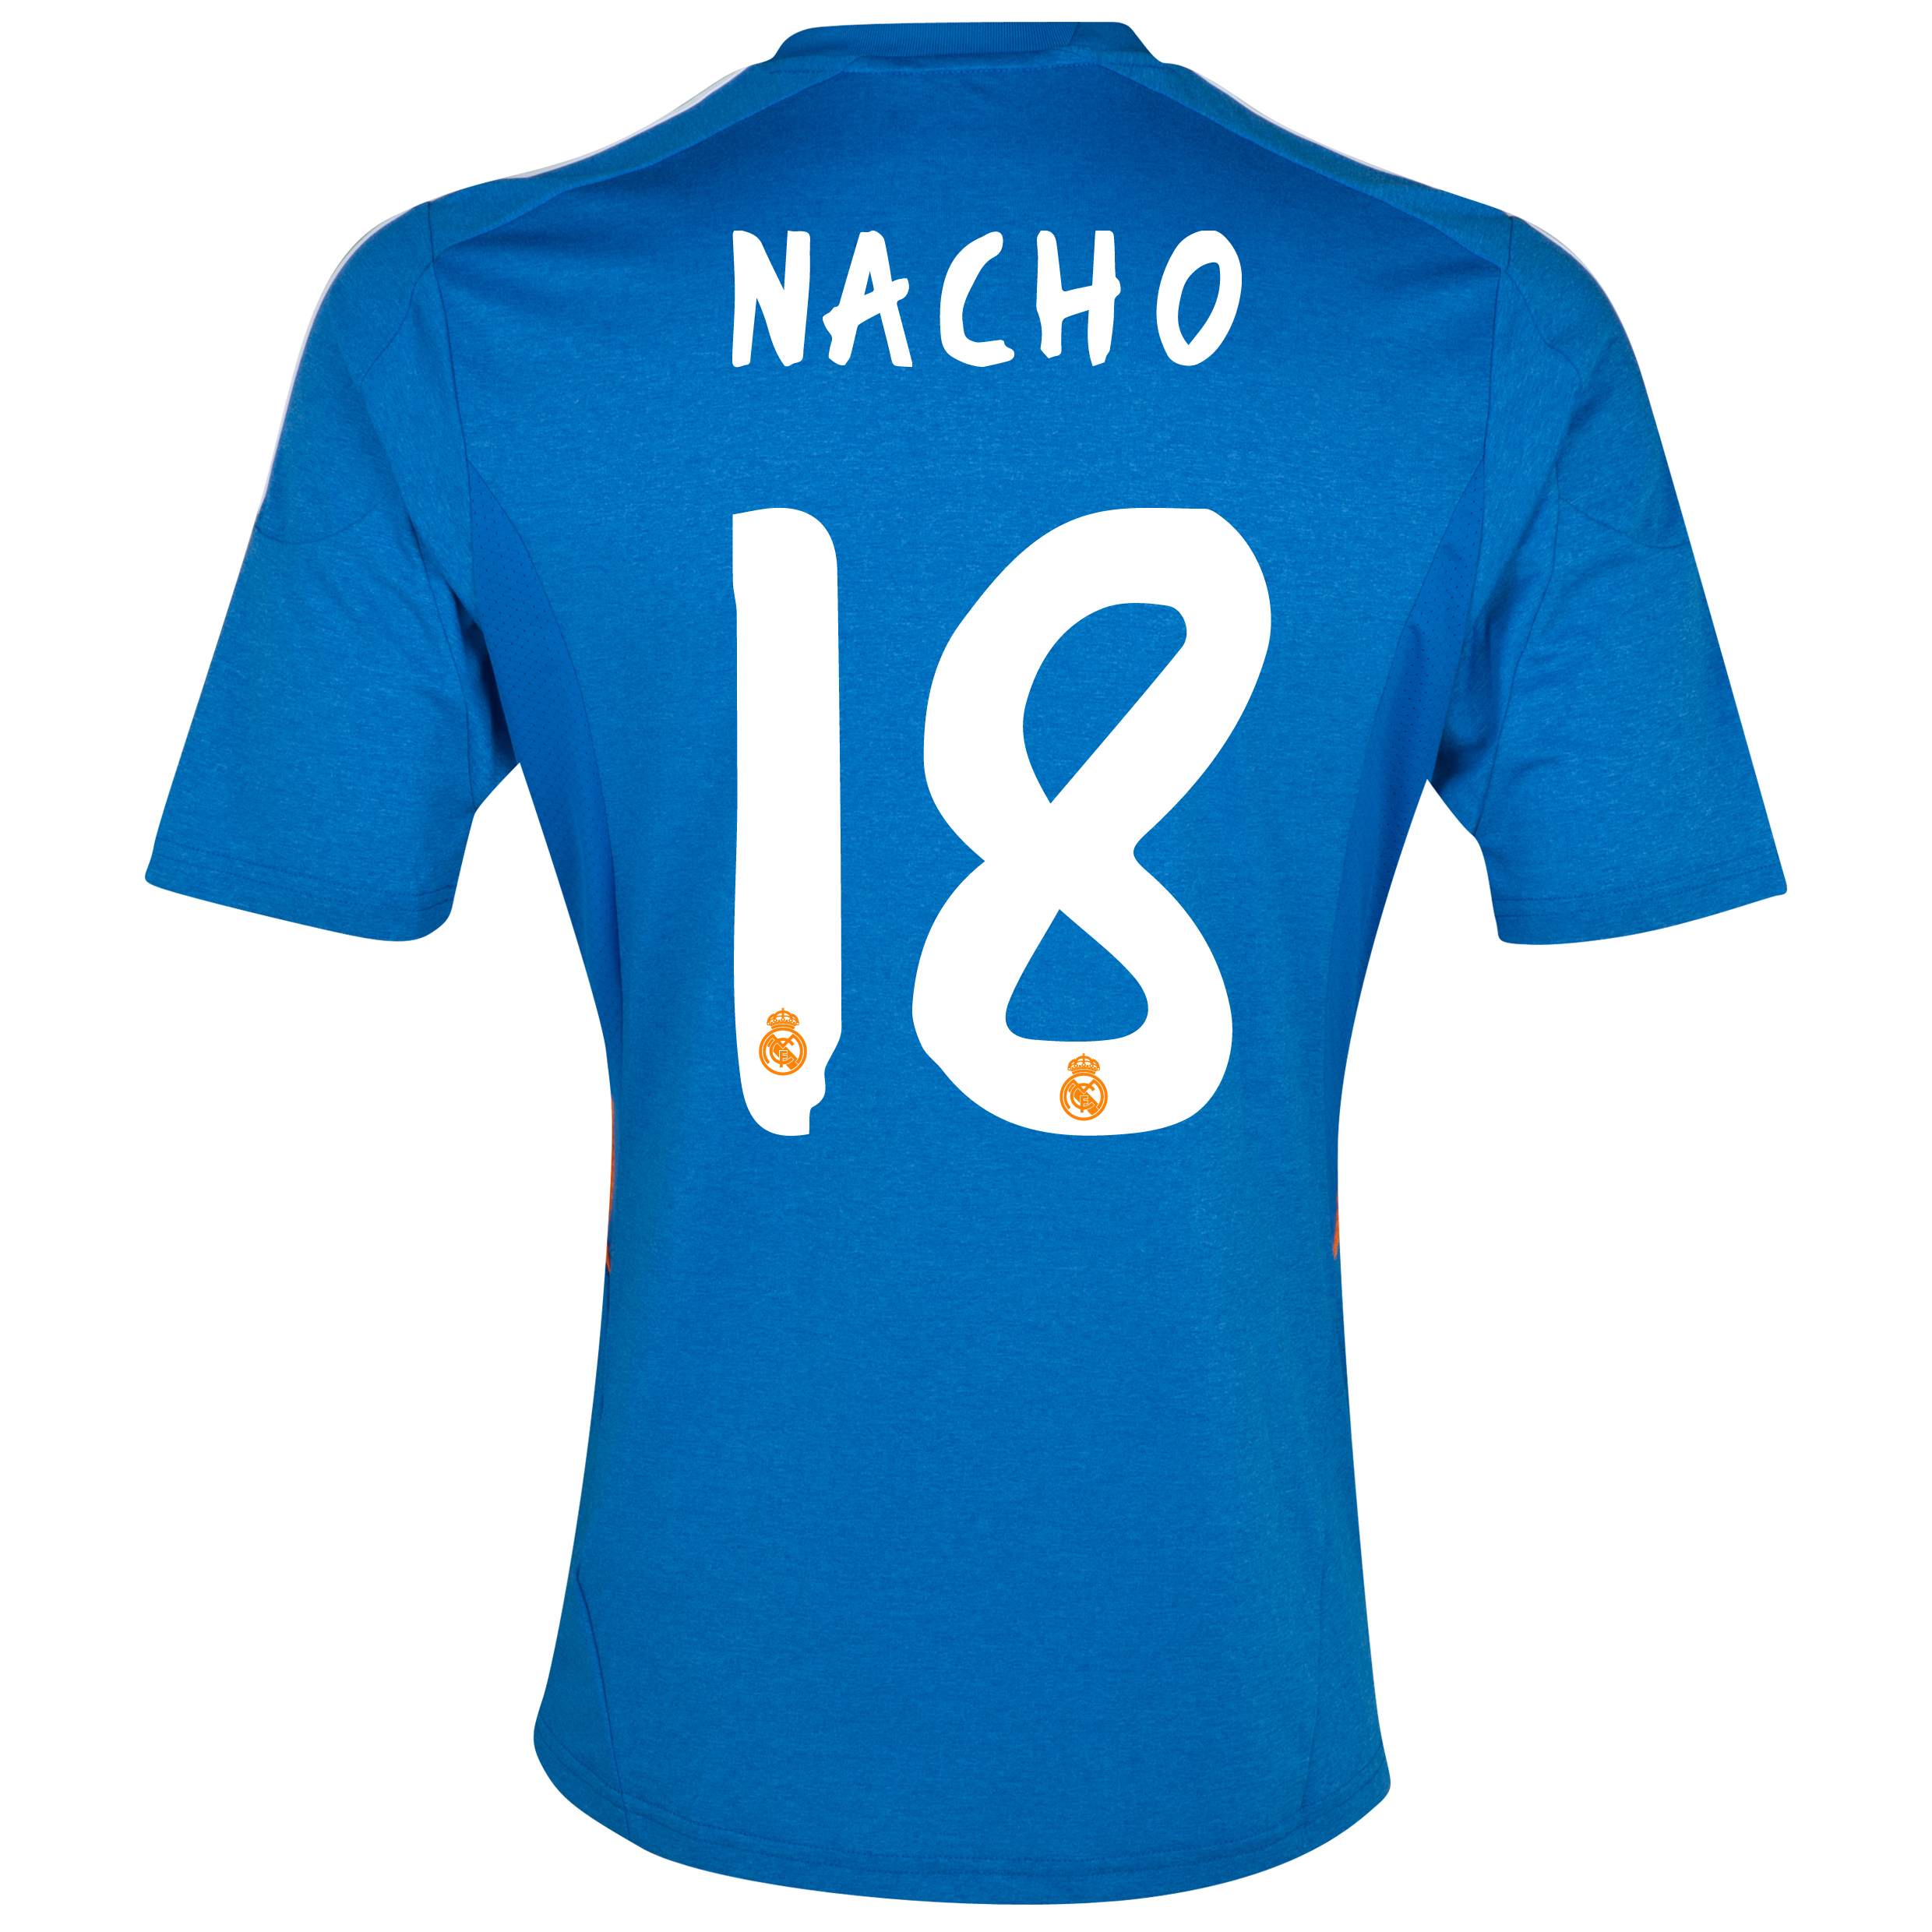 Real Madrid Away Shirt 2013/14 with Nacho 18 printing